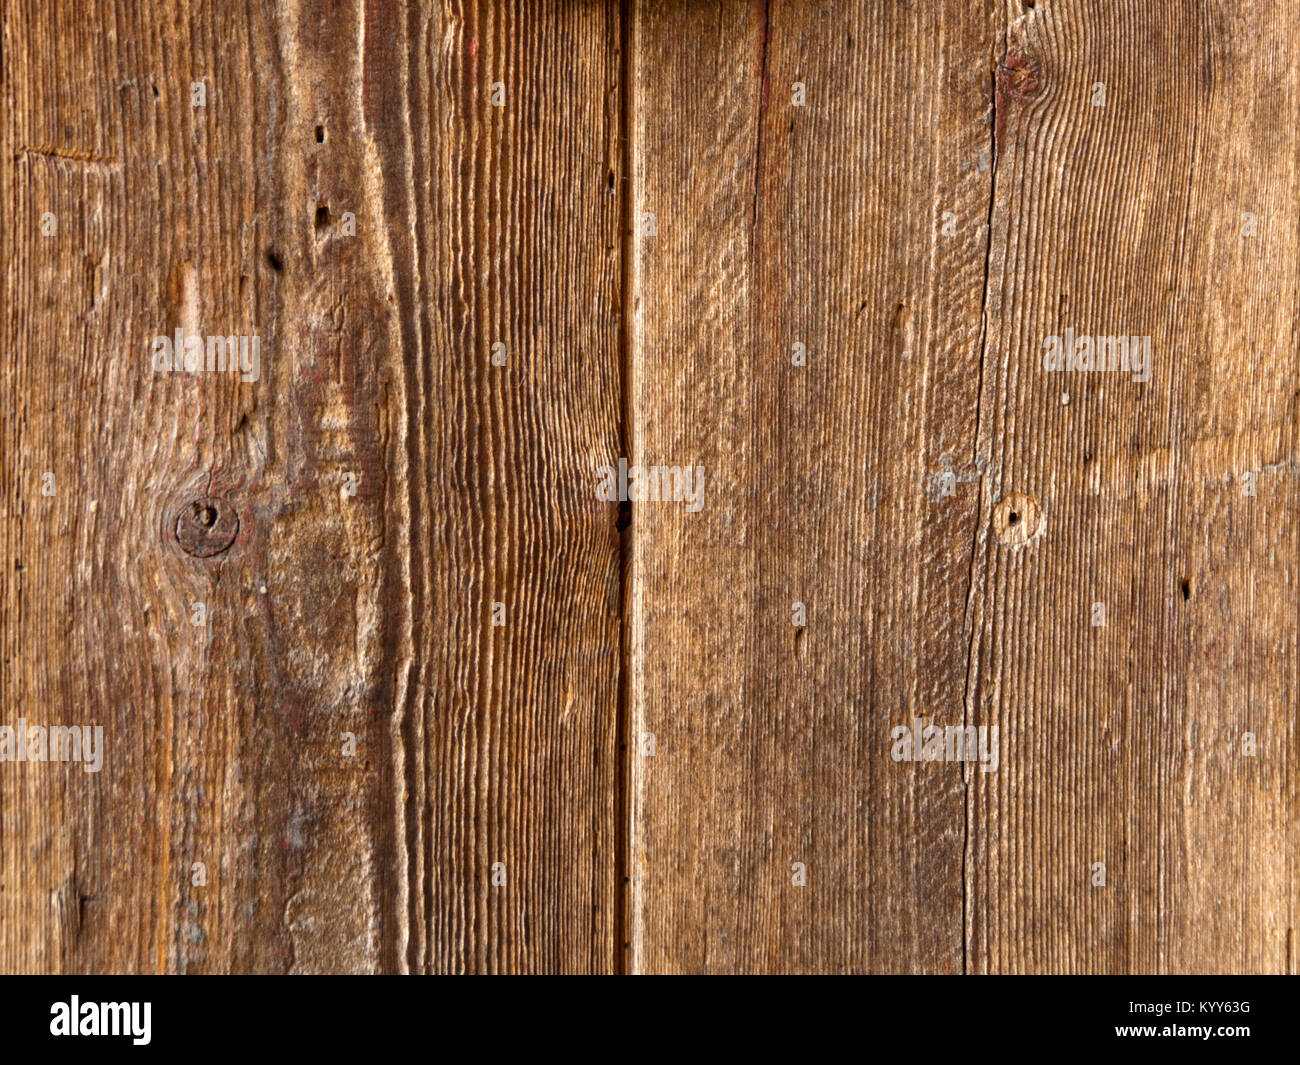 Old shed wooden door planks close up & Old shed wooden door planks close up Stock Photo: 172086532 - Alamy